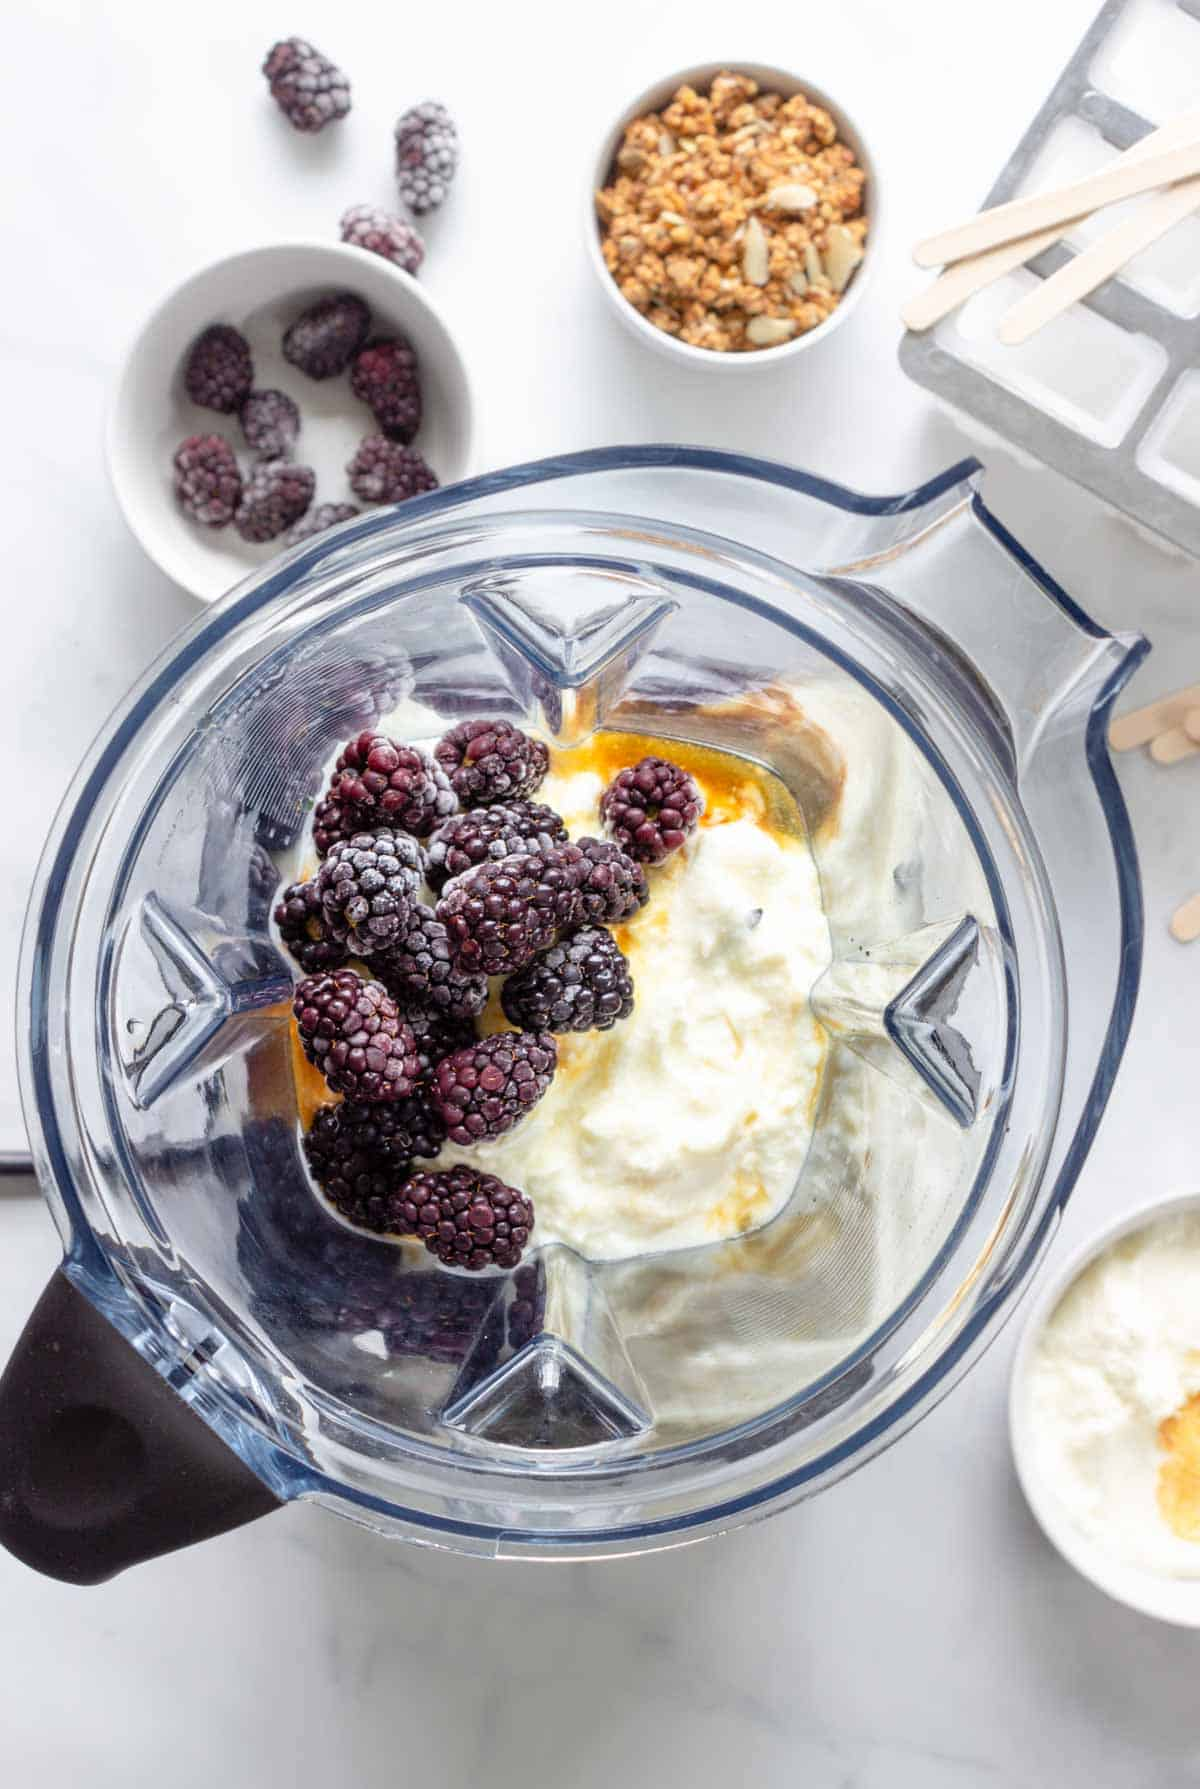 Yogurt, blackberries, maple syrup, and vanilla are placed in a high speed blender. A popsicle tray and sticks along with some granola, blackberries, and yogurt sit nearby.